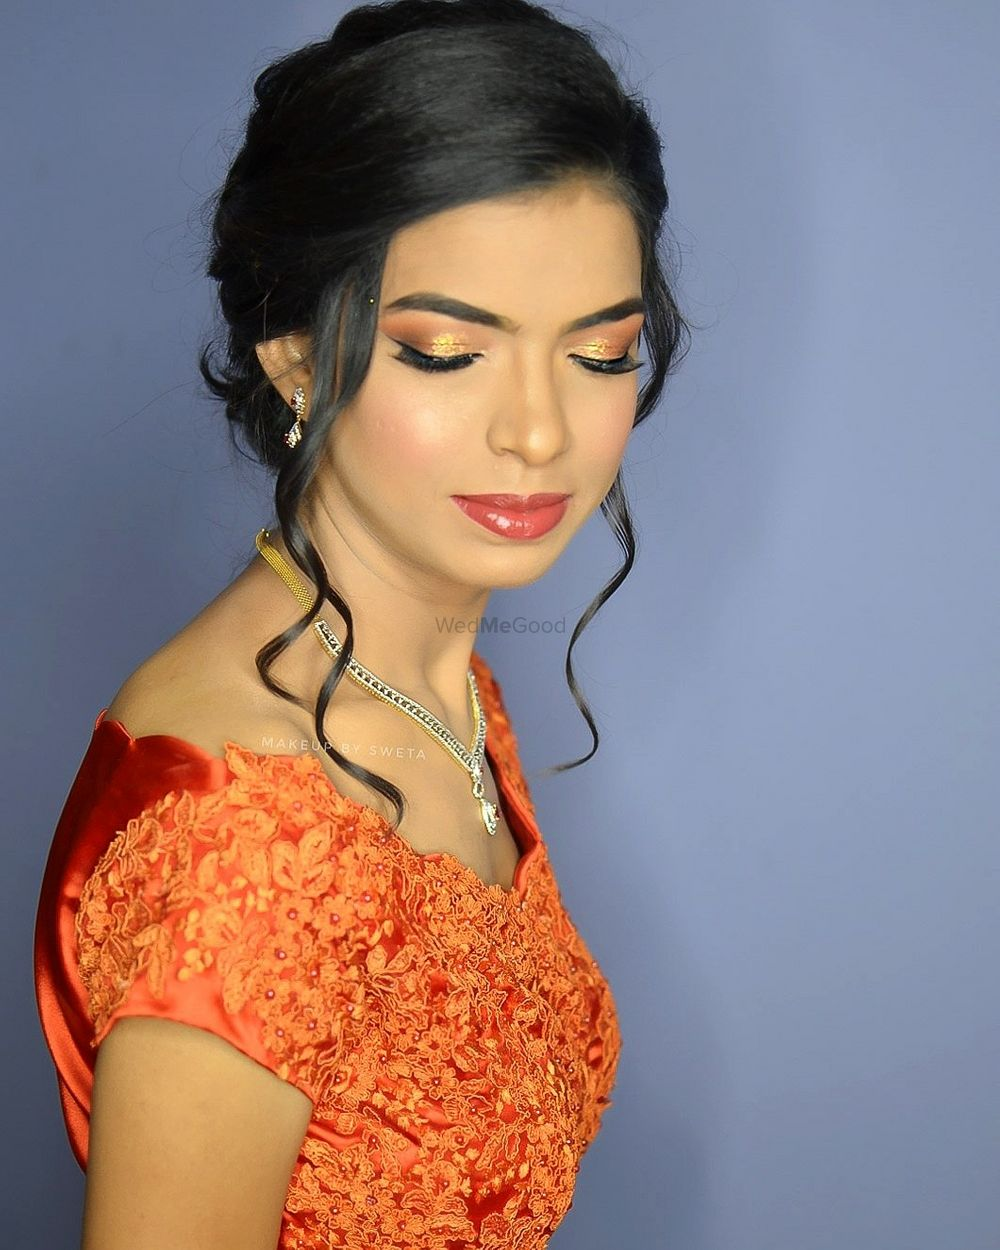 Photo From All Beautiful Brides - By Makeup by Sweta